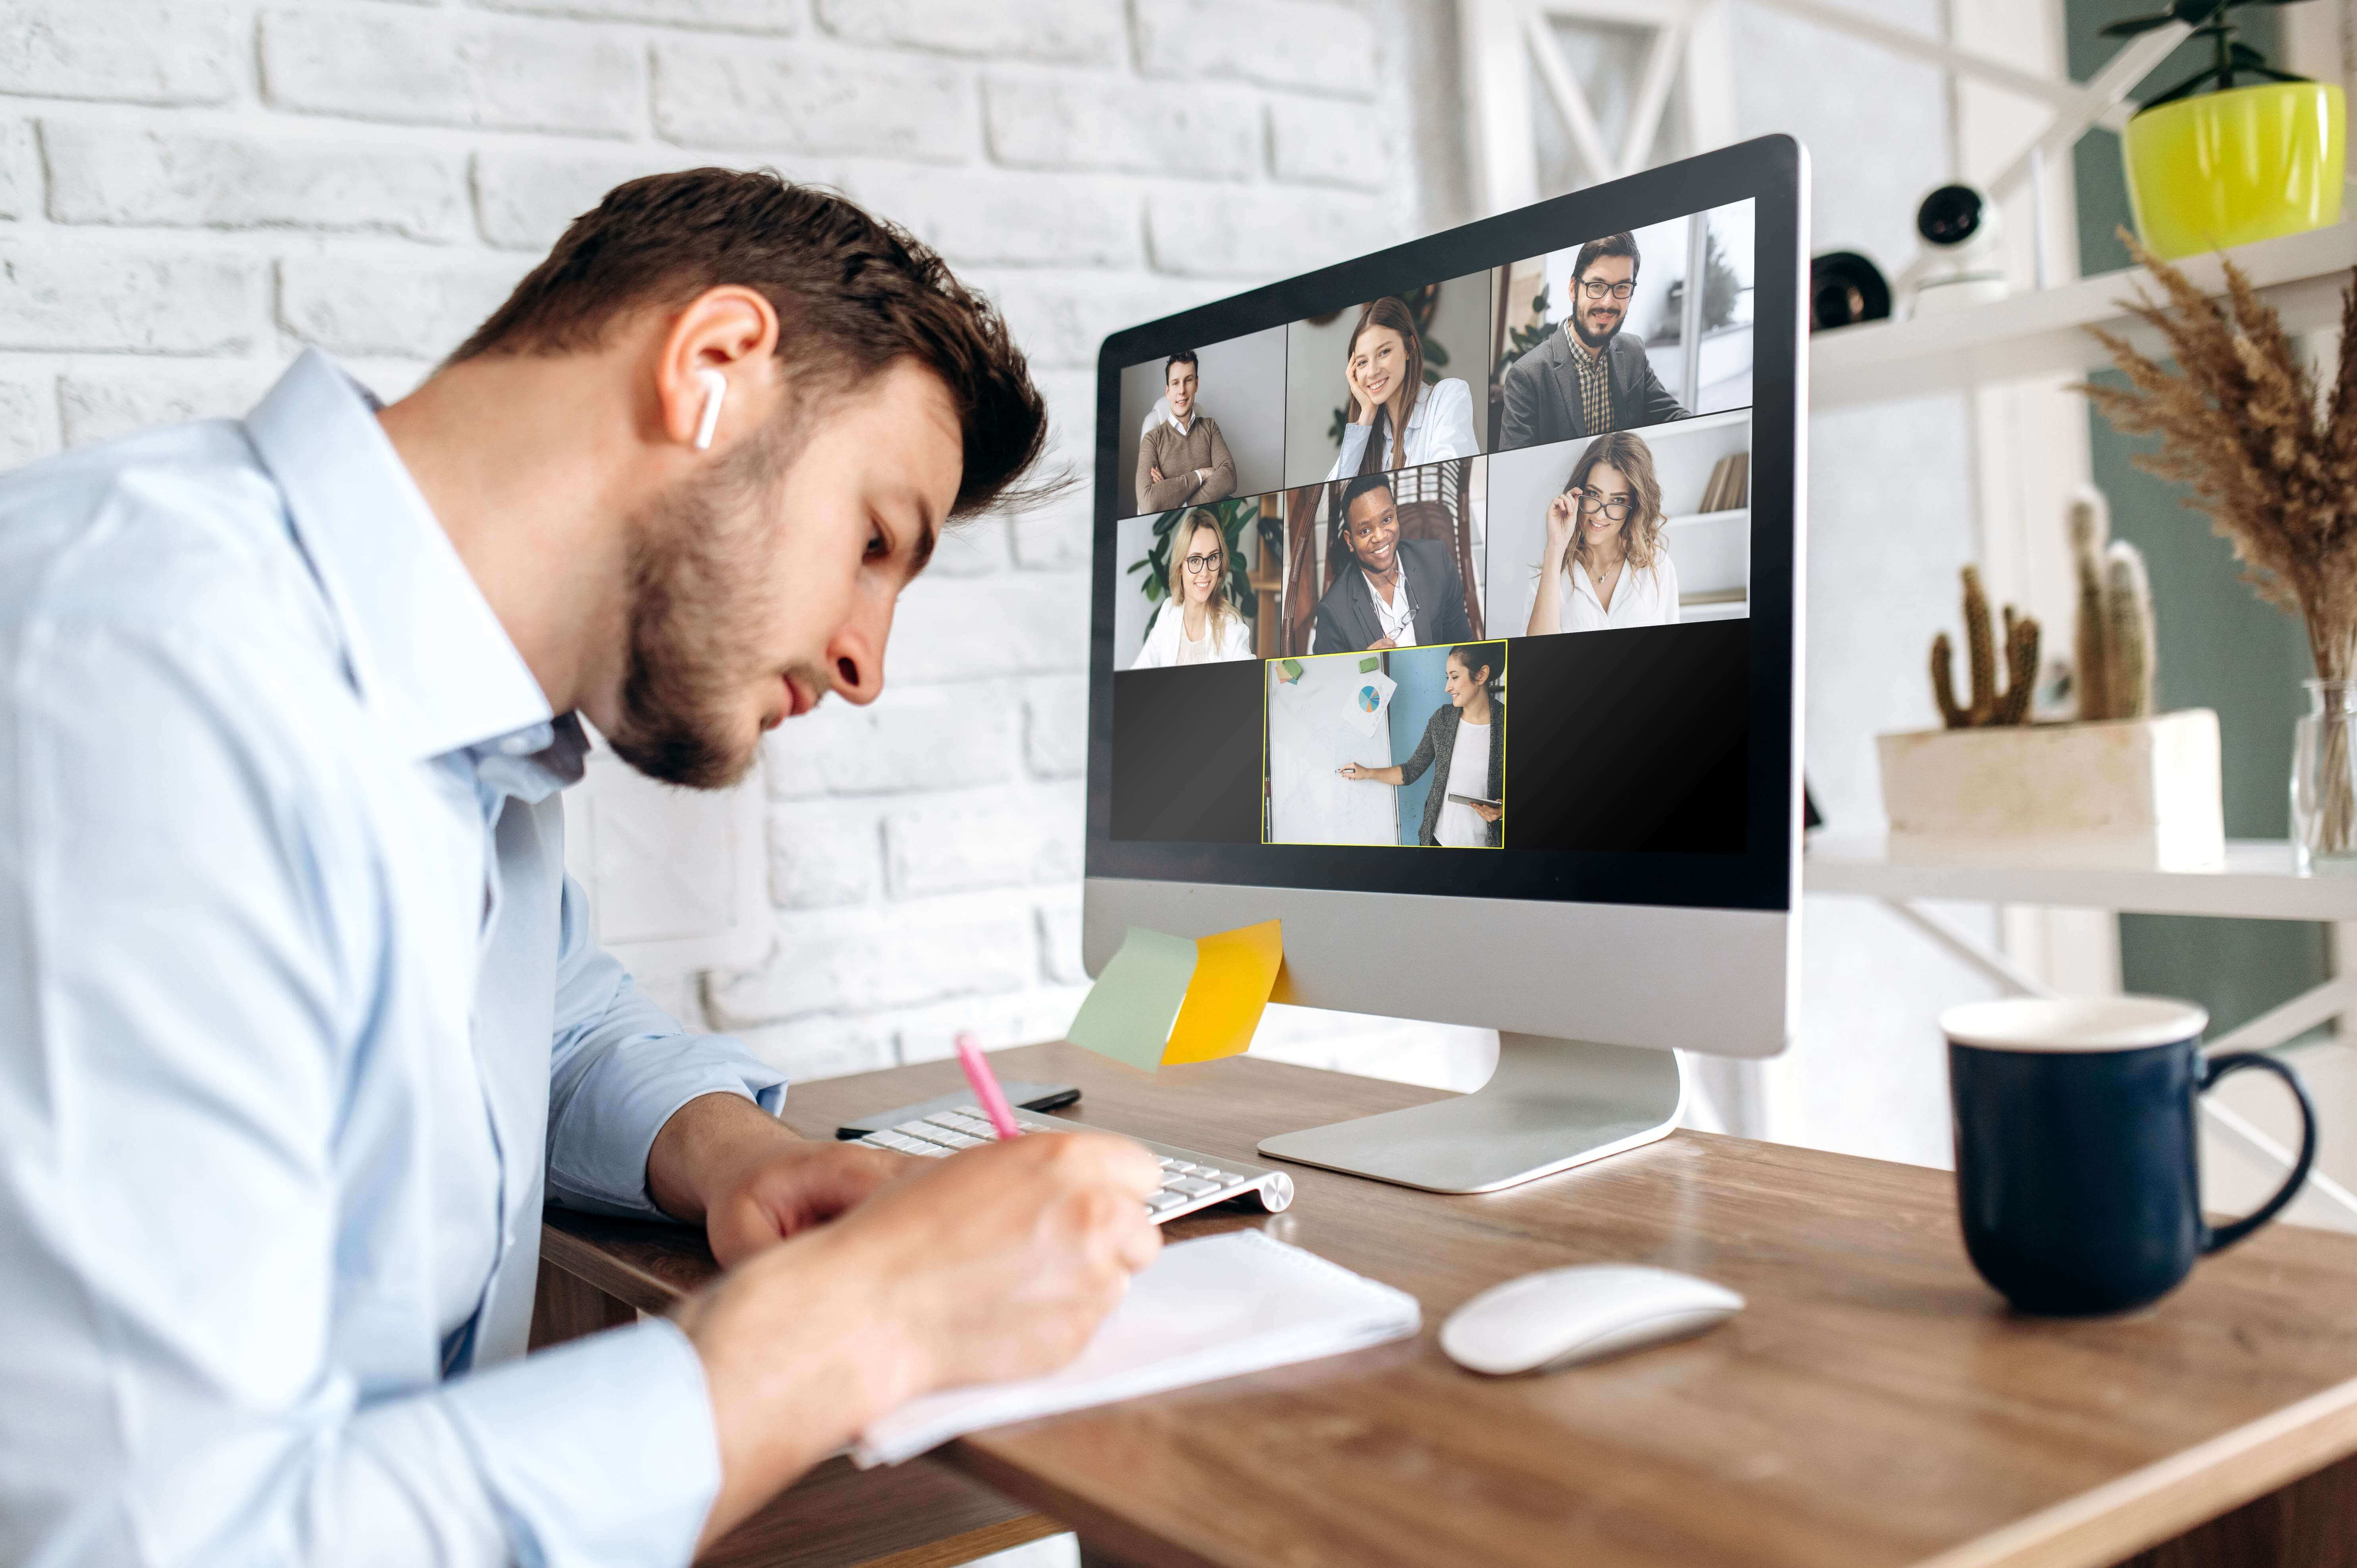 Man with Earbuds on Video Conf. Call